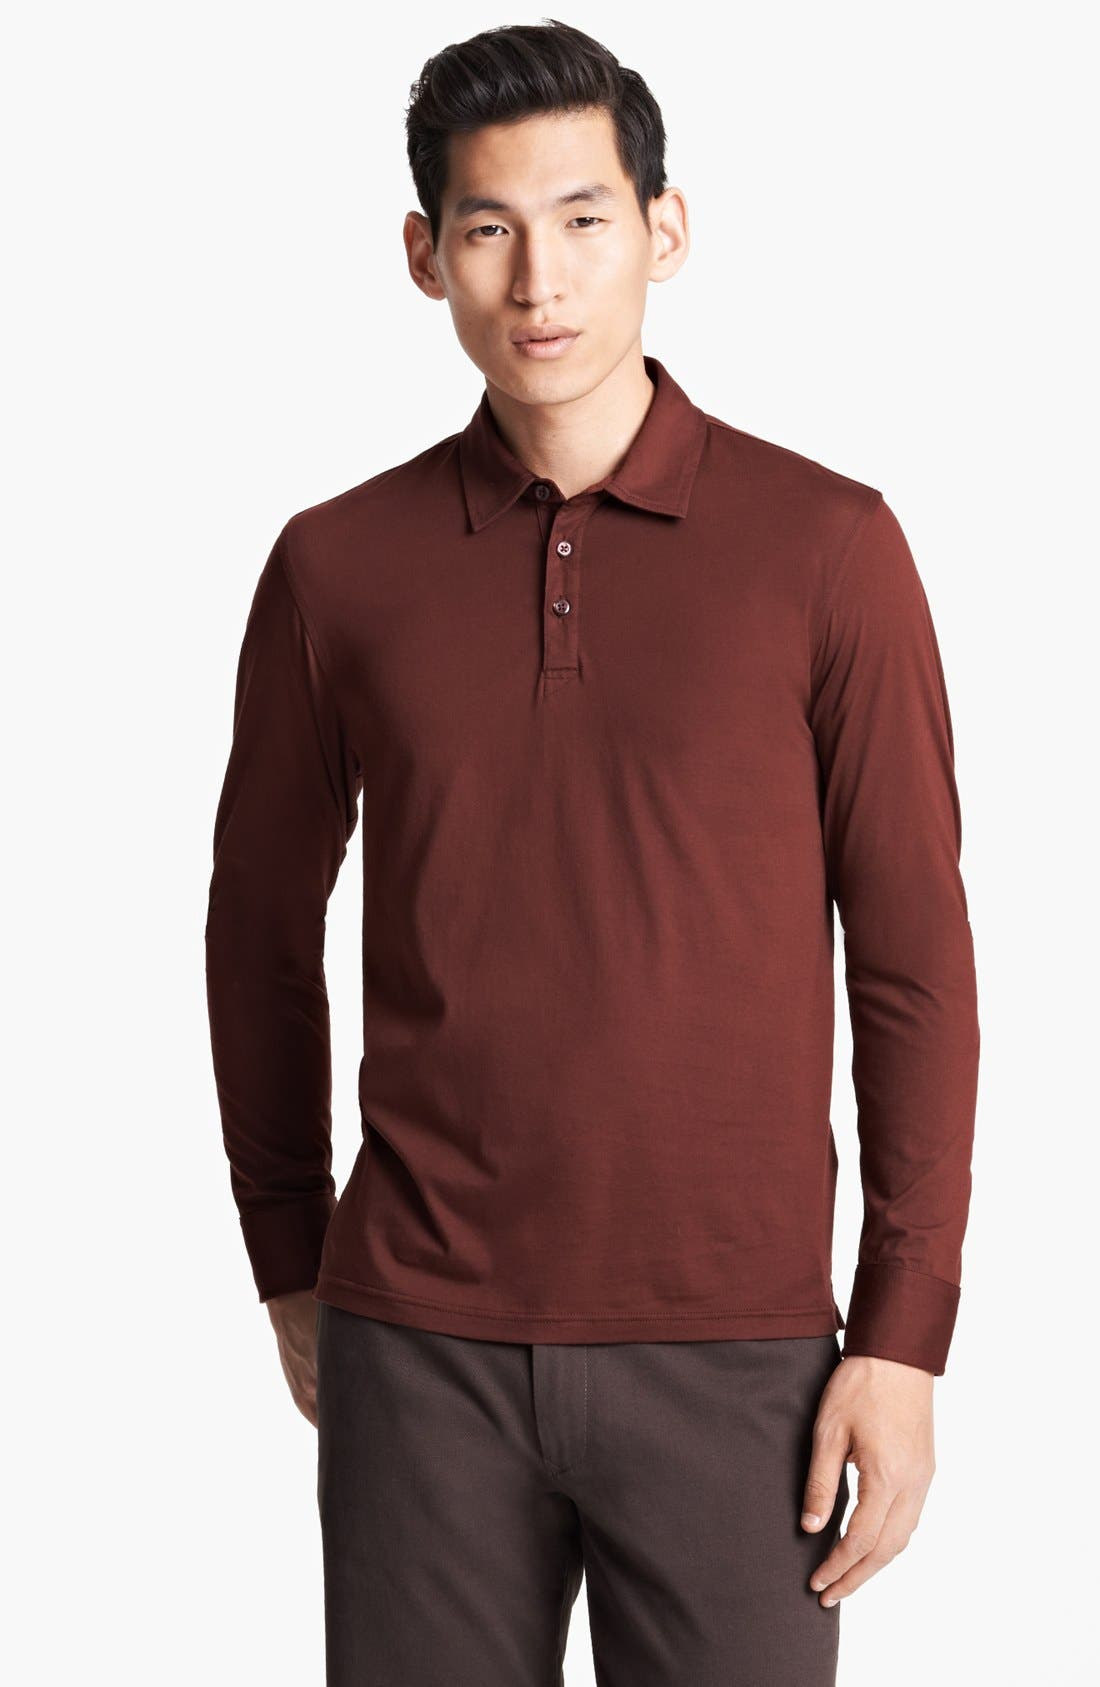 Alternate Image 1 Selected - Zegna Sport 'Ice' Long Sleeve Polo